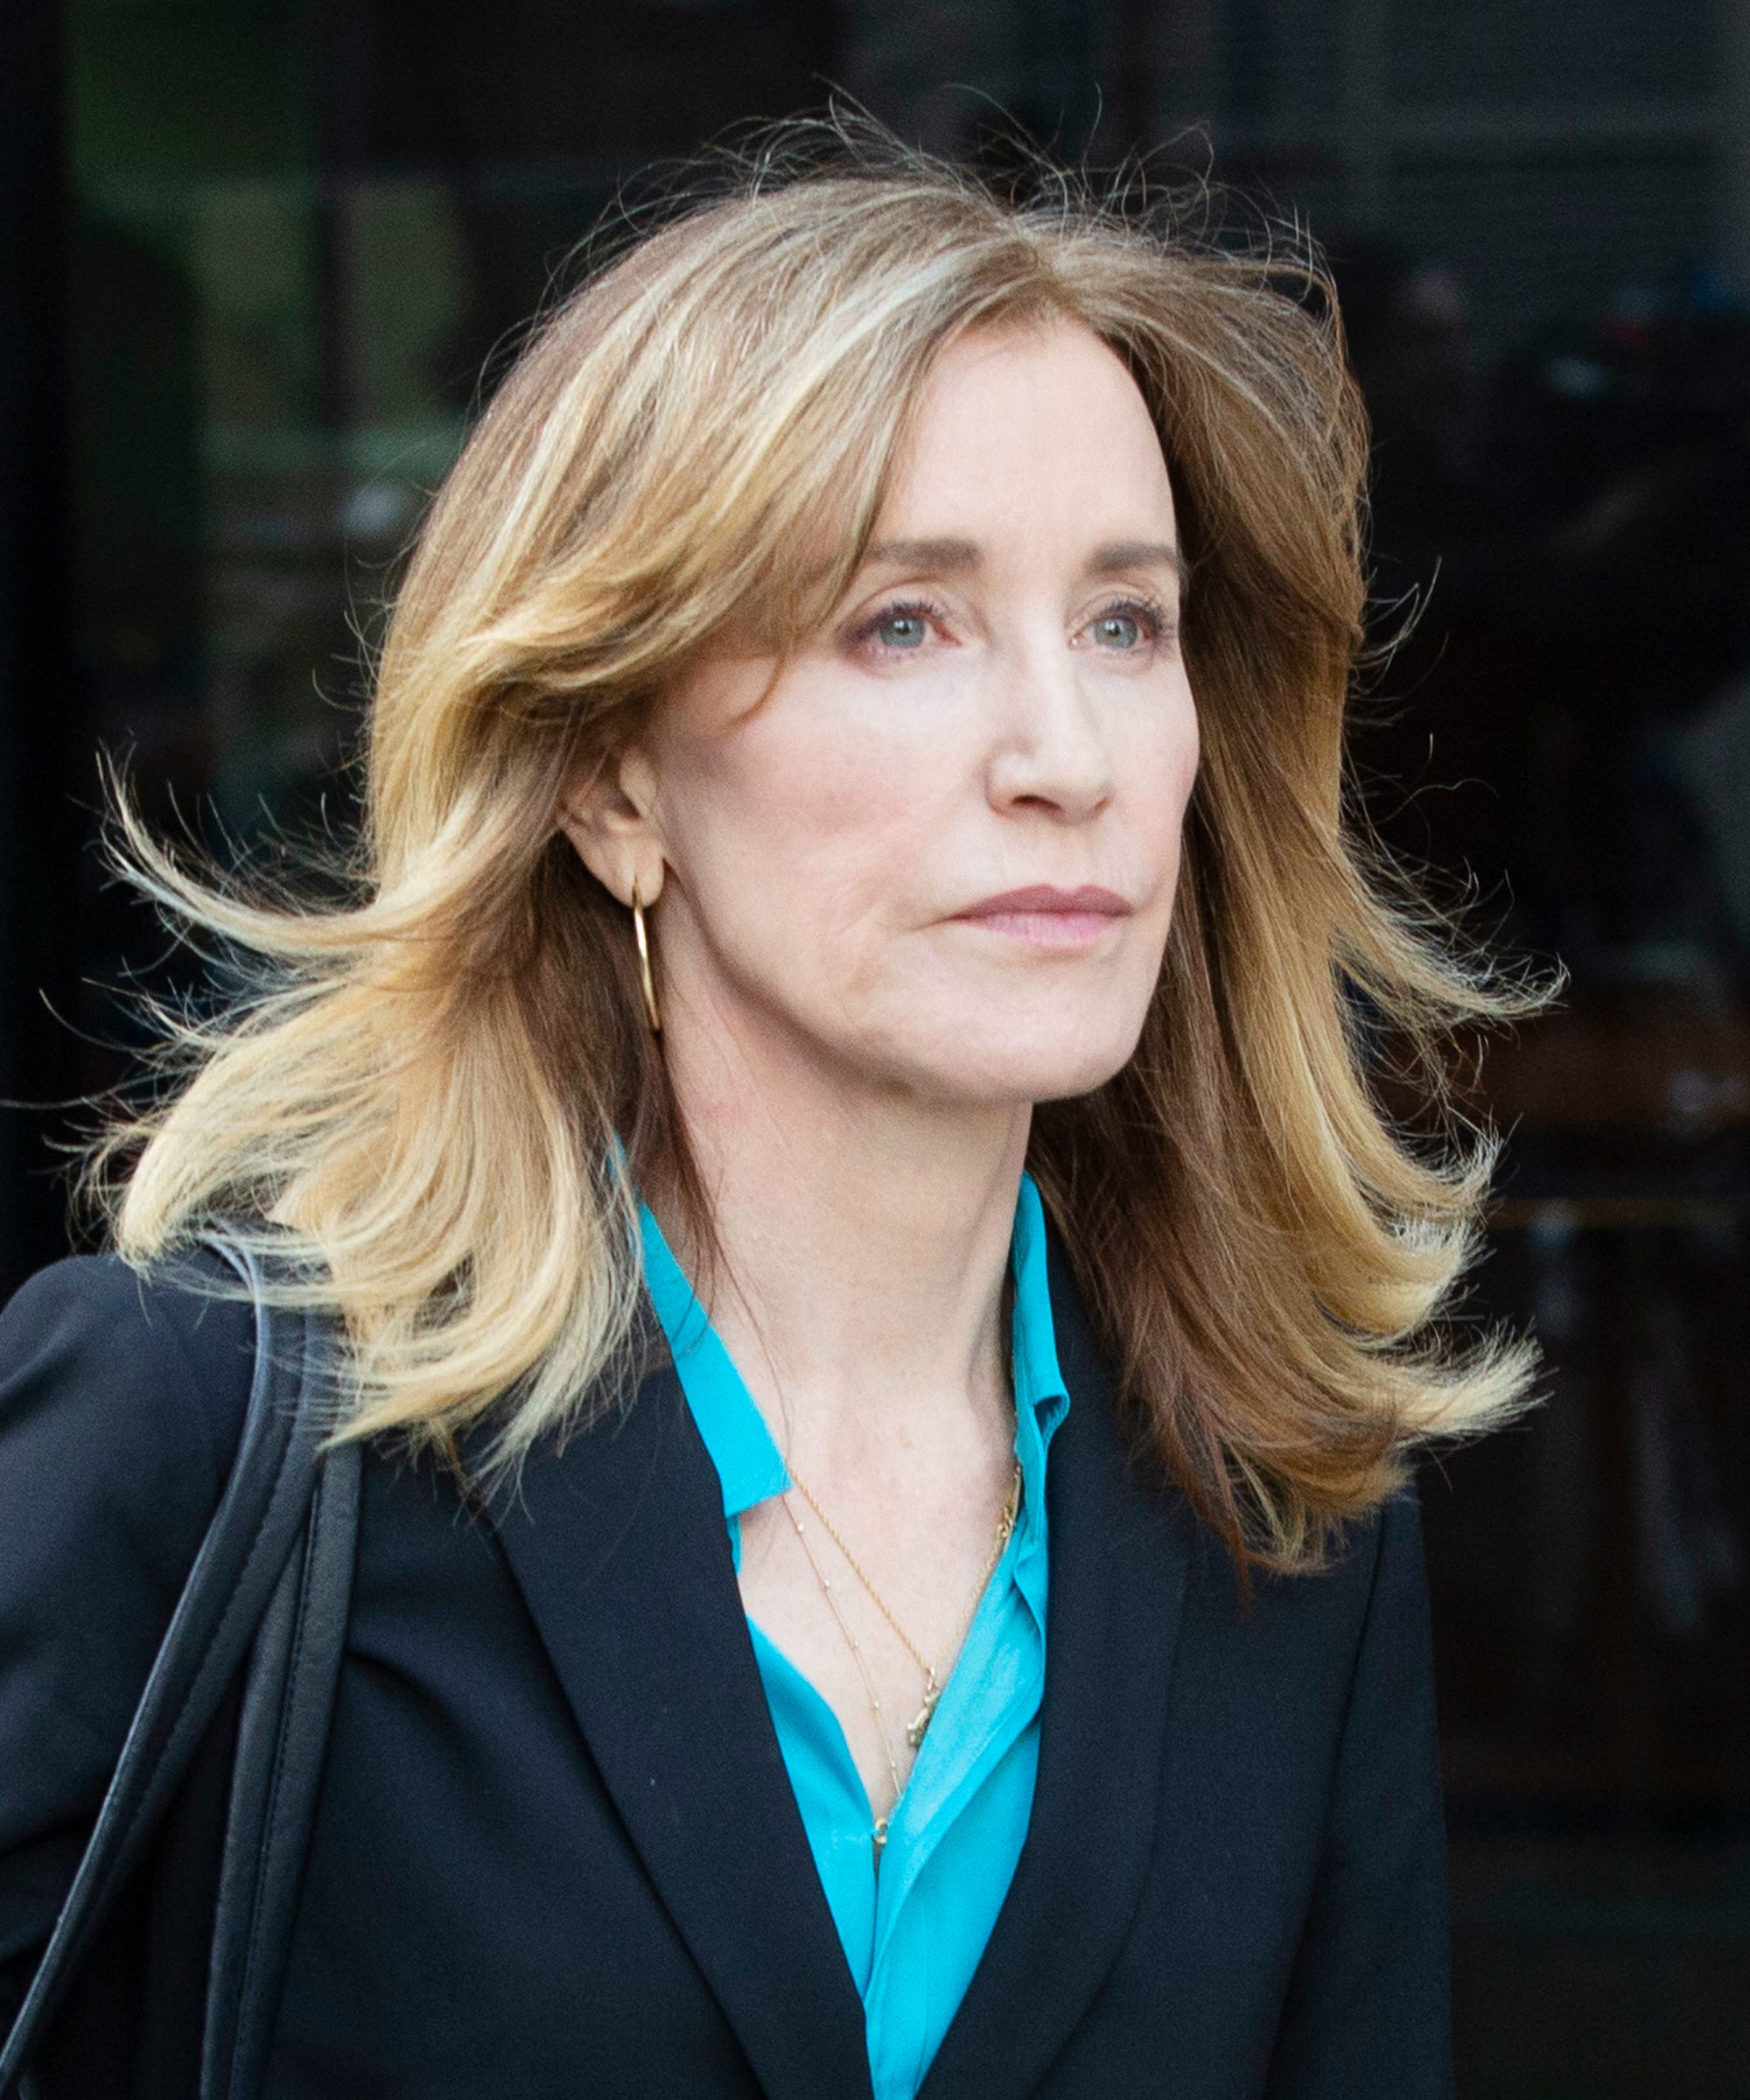 What Kind Of Prison Time Is Felicity Huffman Facing For The College Admissions Scandal?